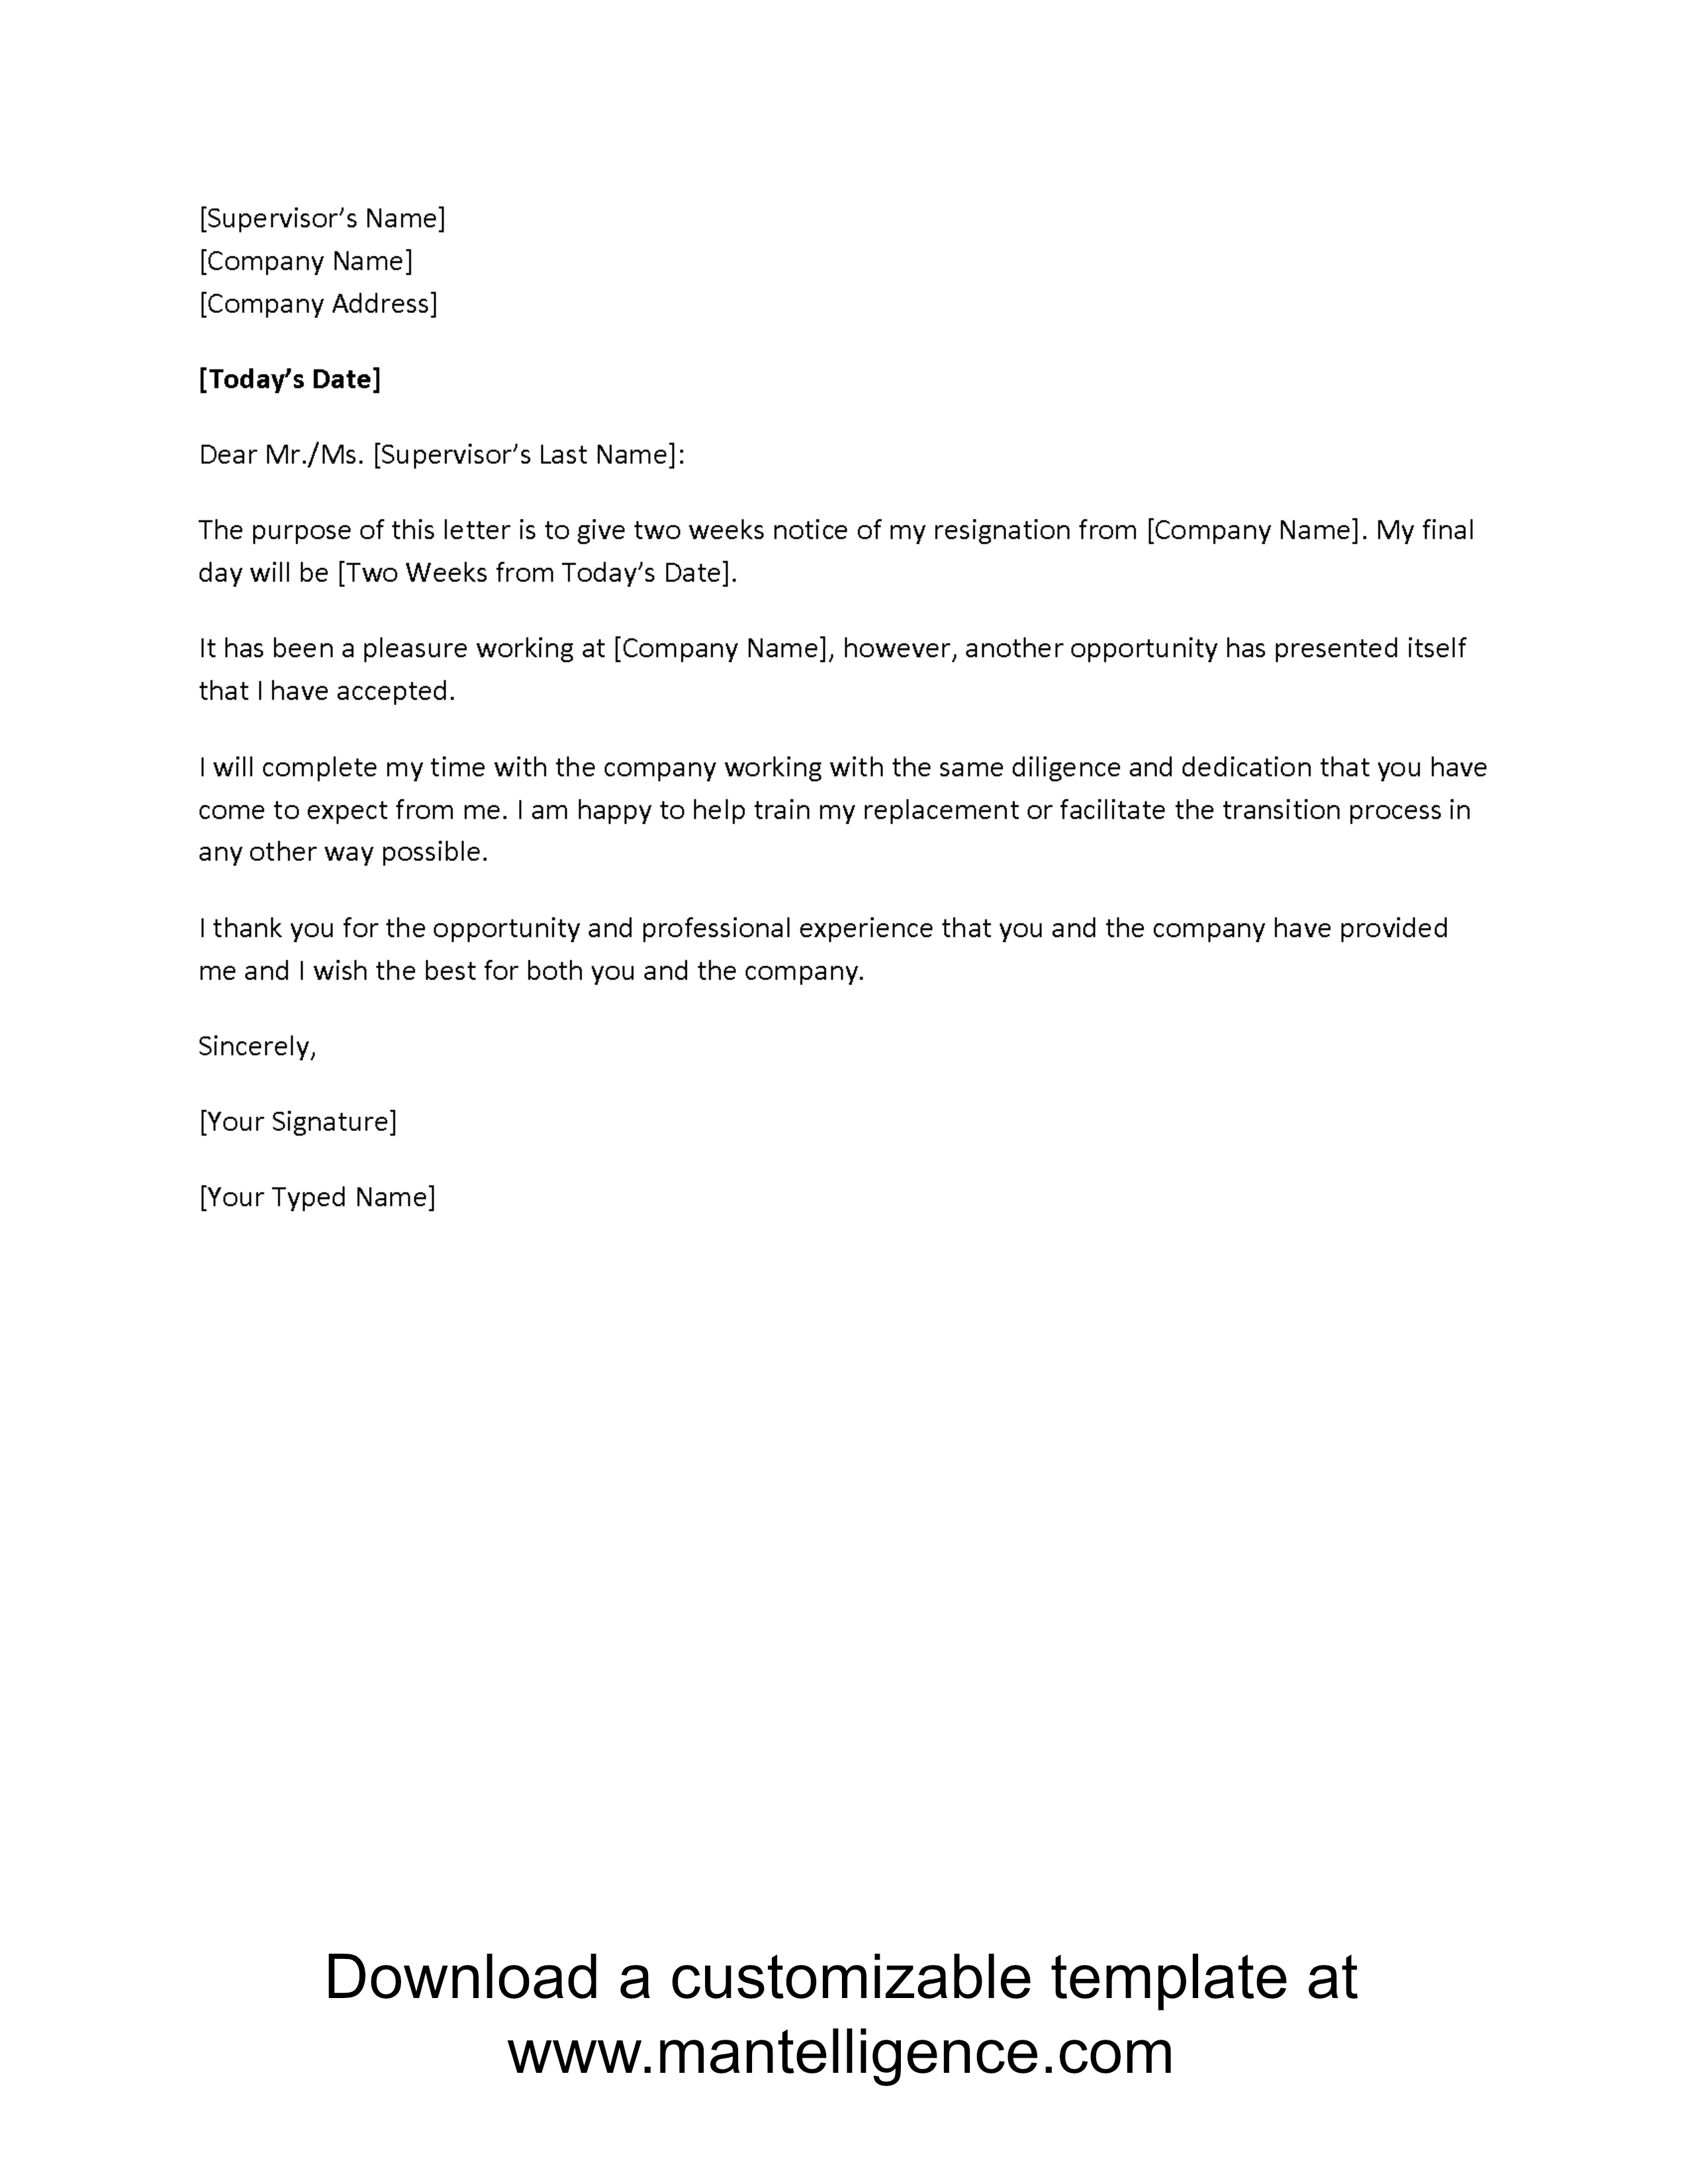 3 Highly Professional Two Weeks Notice Letter Templates | Letter